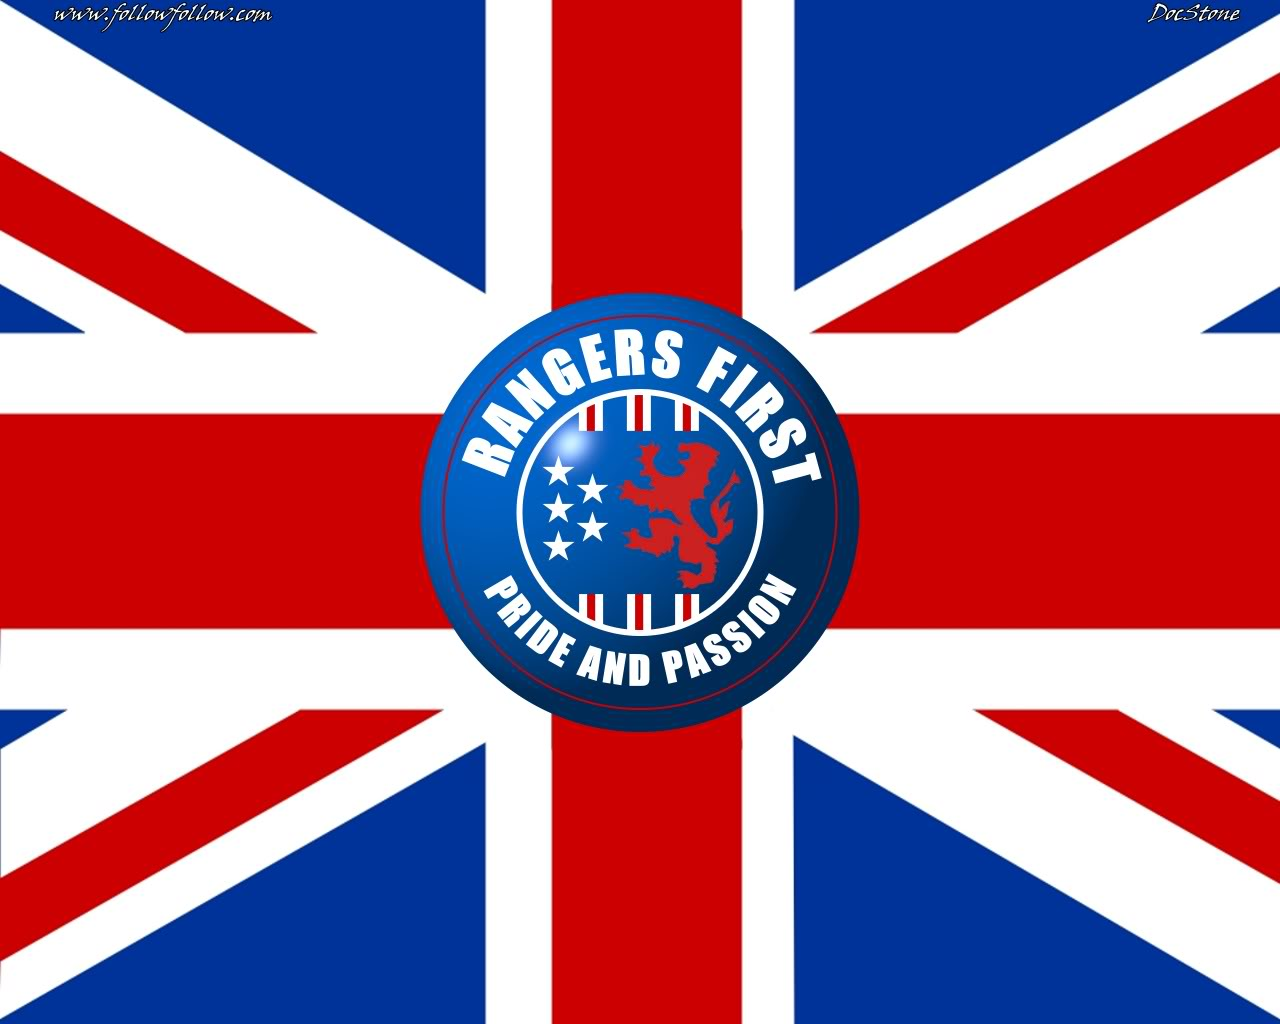 Rangers Fc Wallpapers 1280x1024